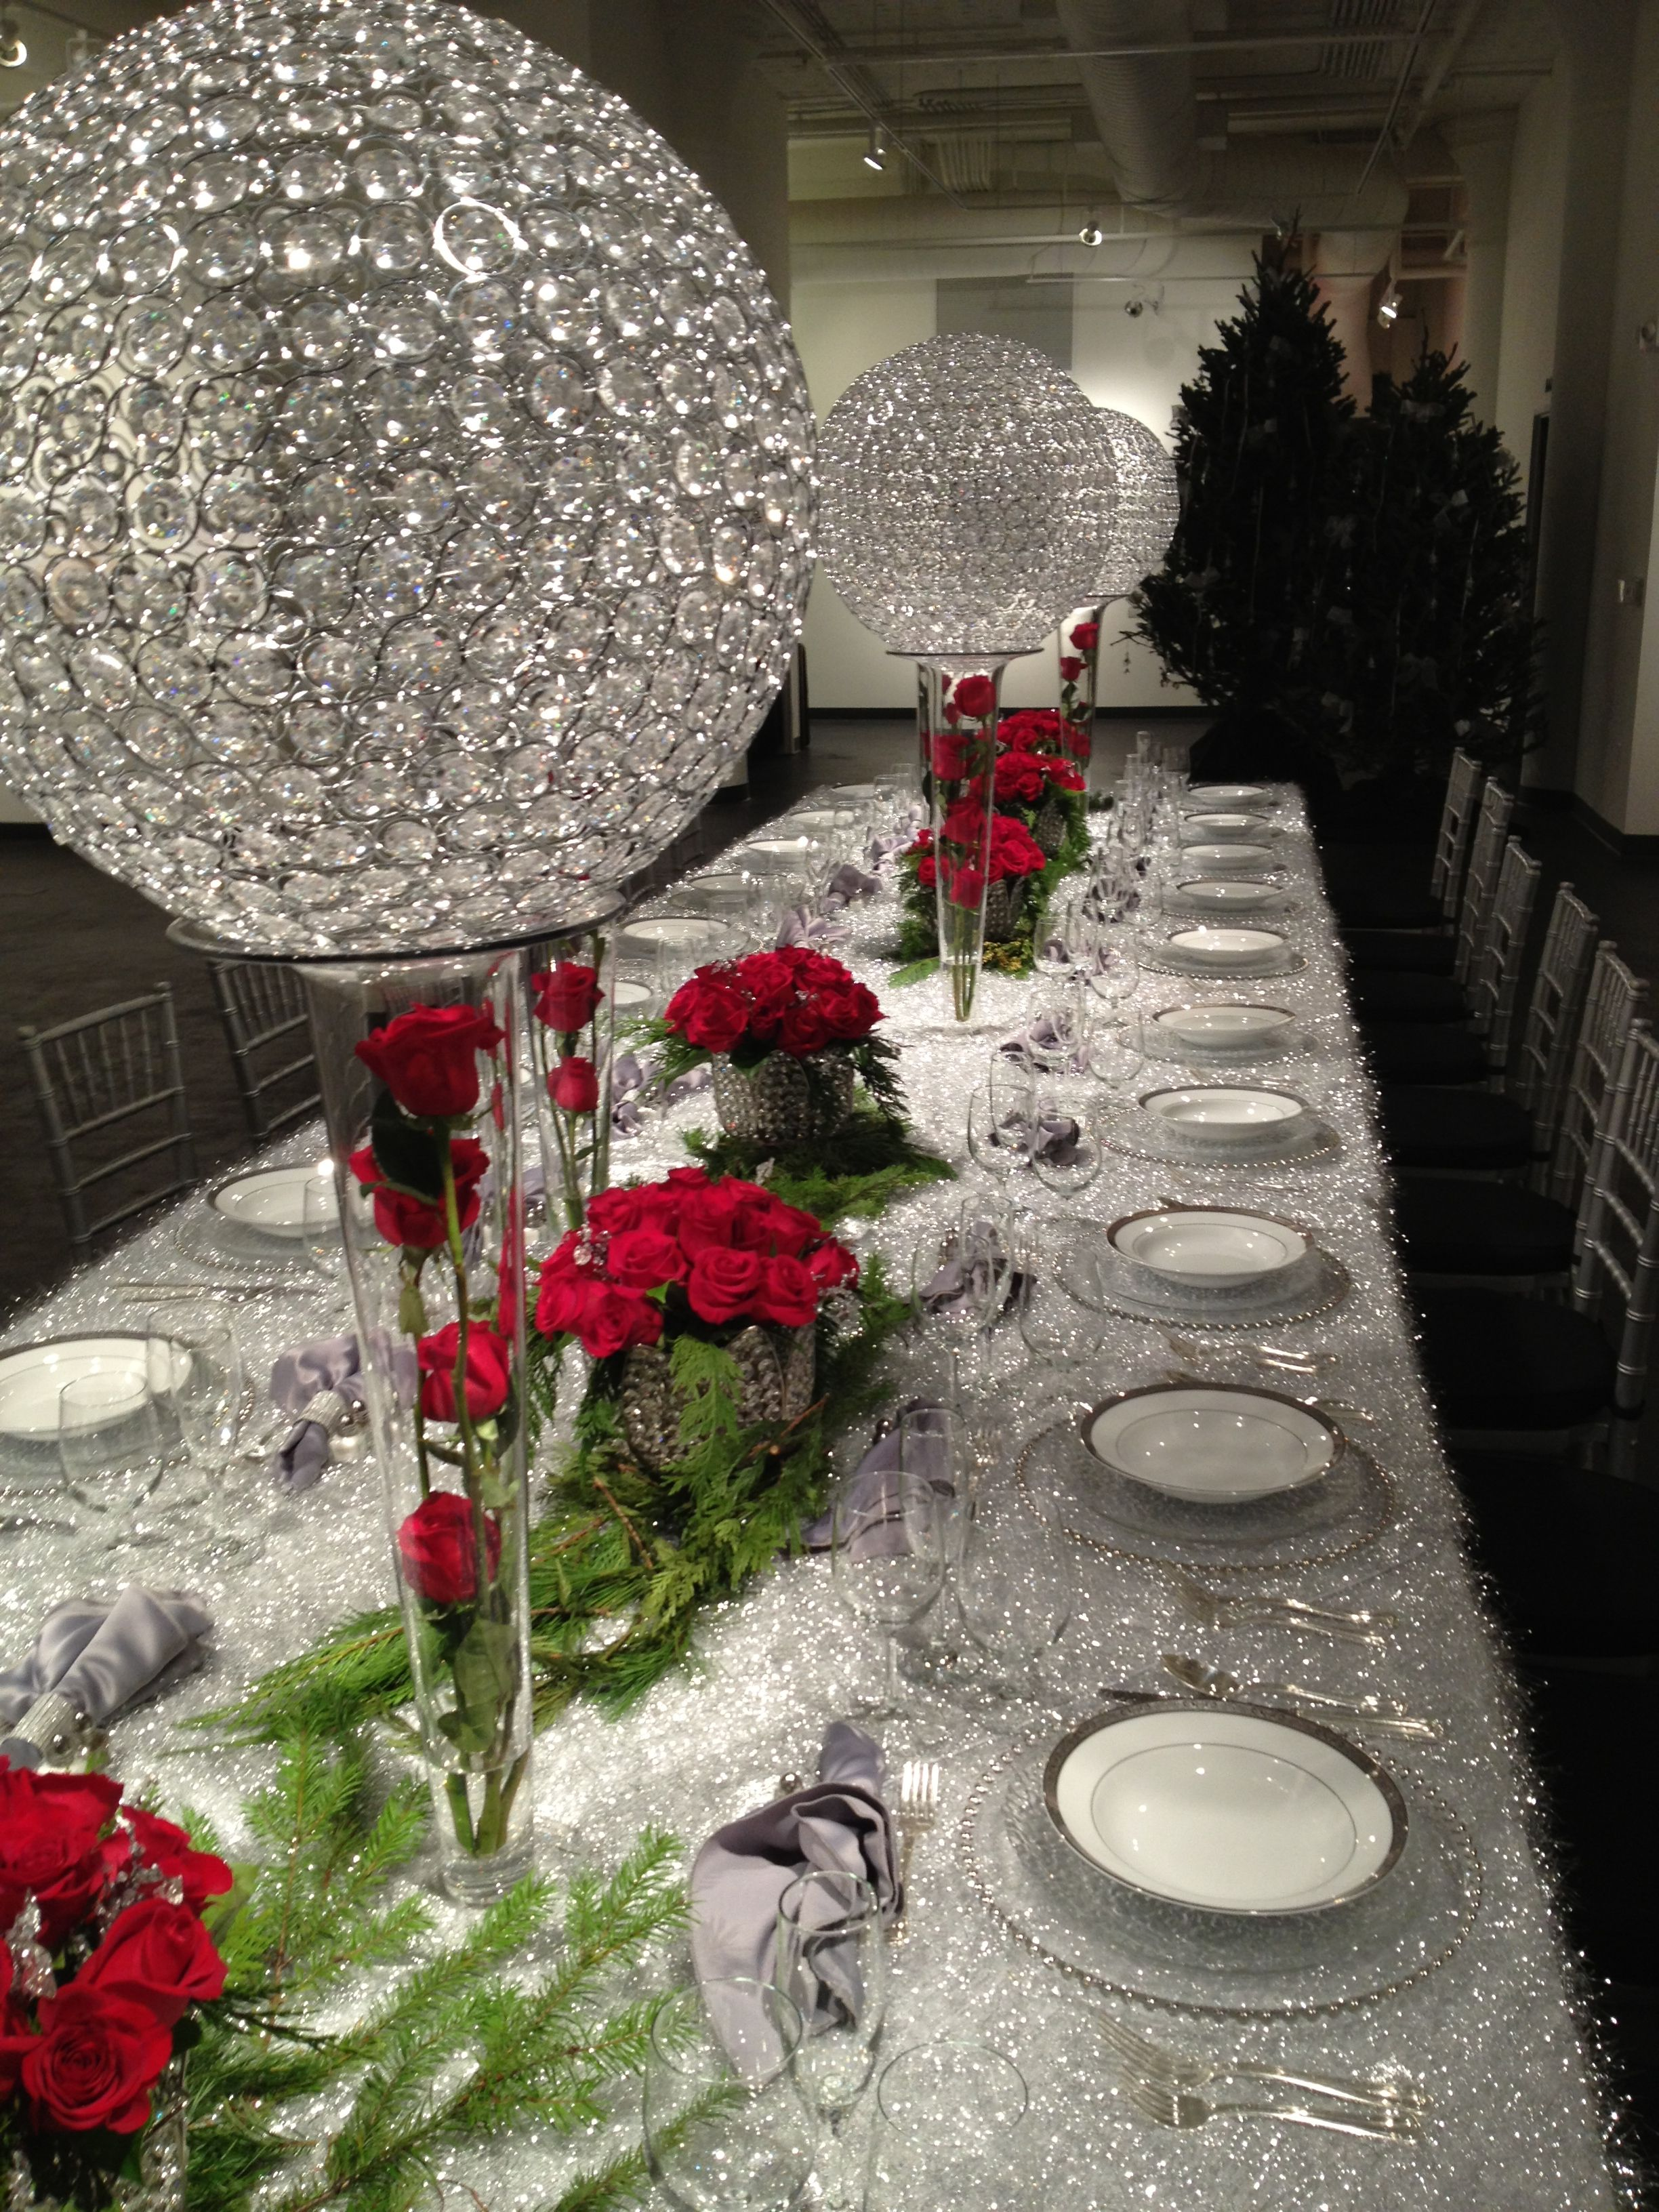 room day ideas chinese year furnish medium decorations for interior full size decoration elegant terrific home corner of office windows living your px decorating decor best with christmas valentines